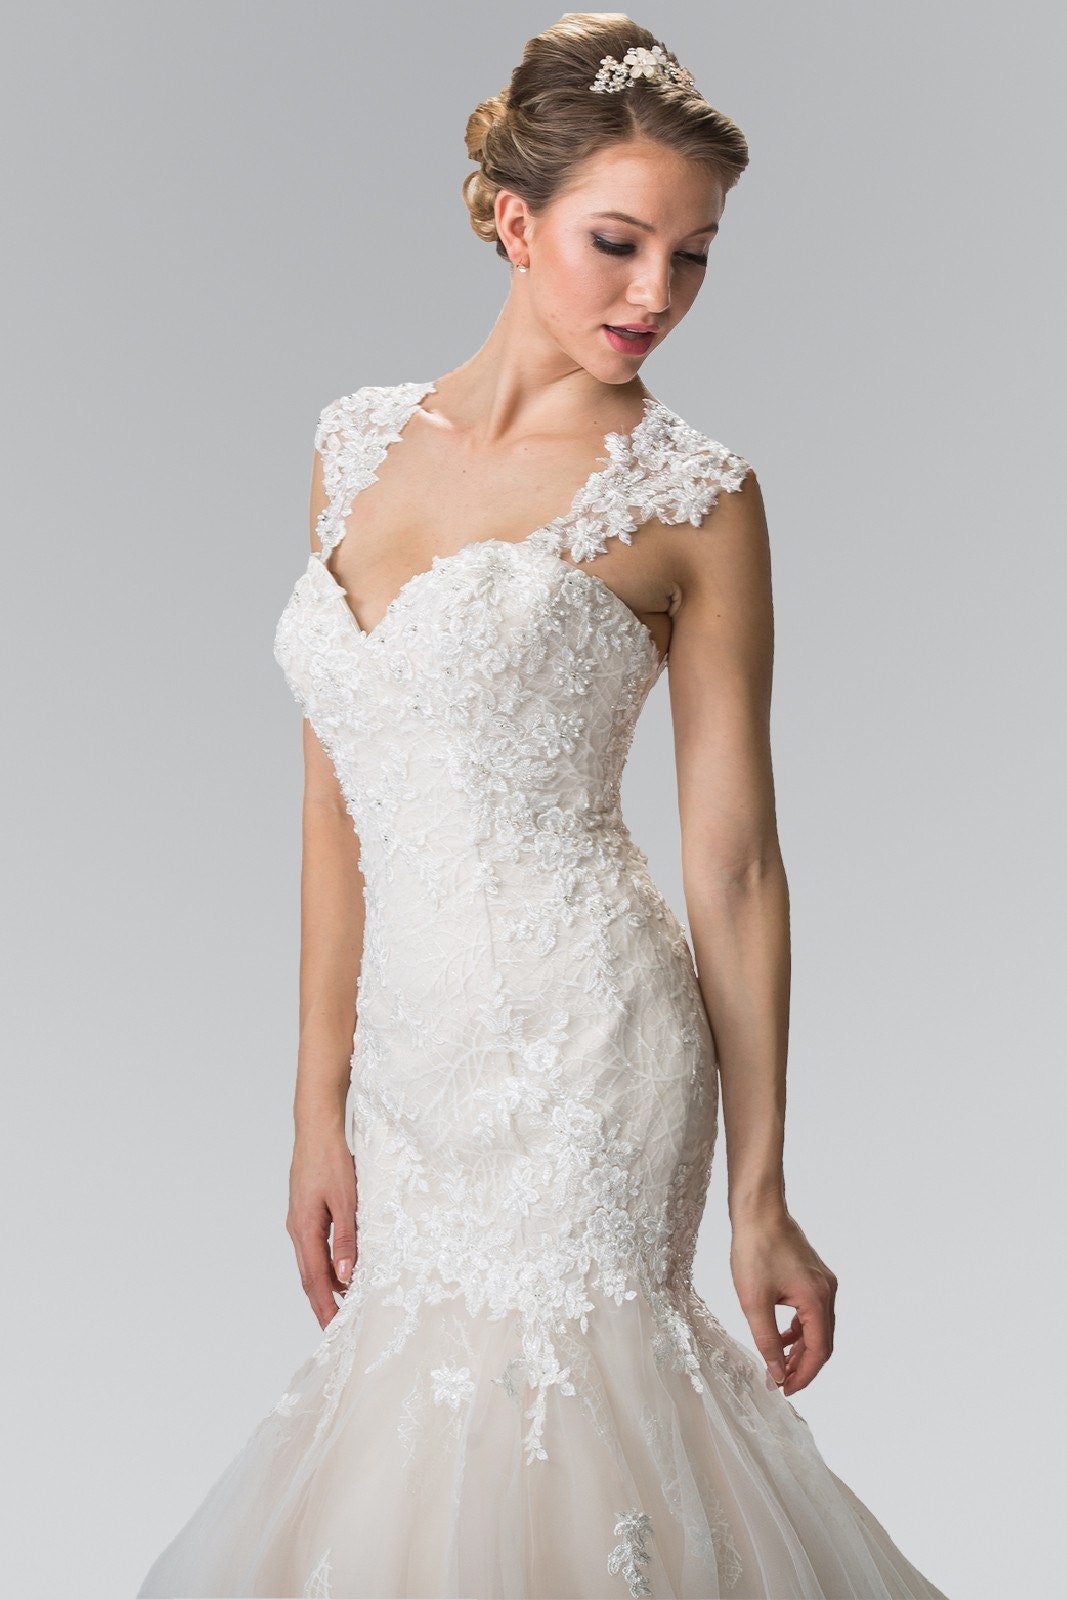 Champagne Ivory Lace Wedding Dress gls 2367 – Simply Fab Dress